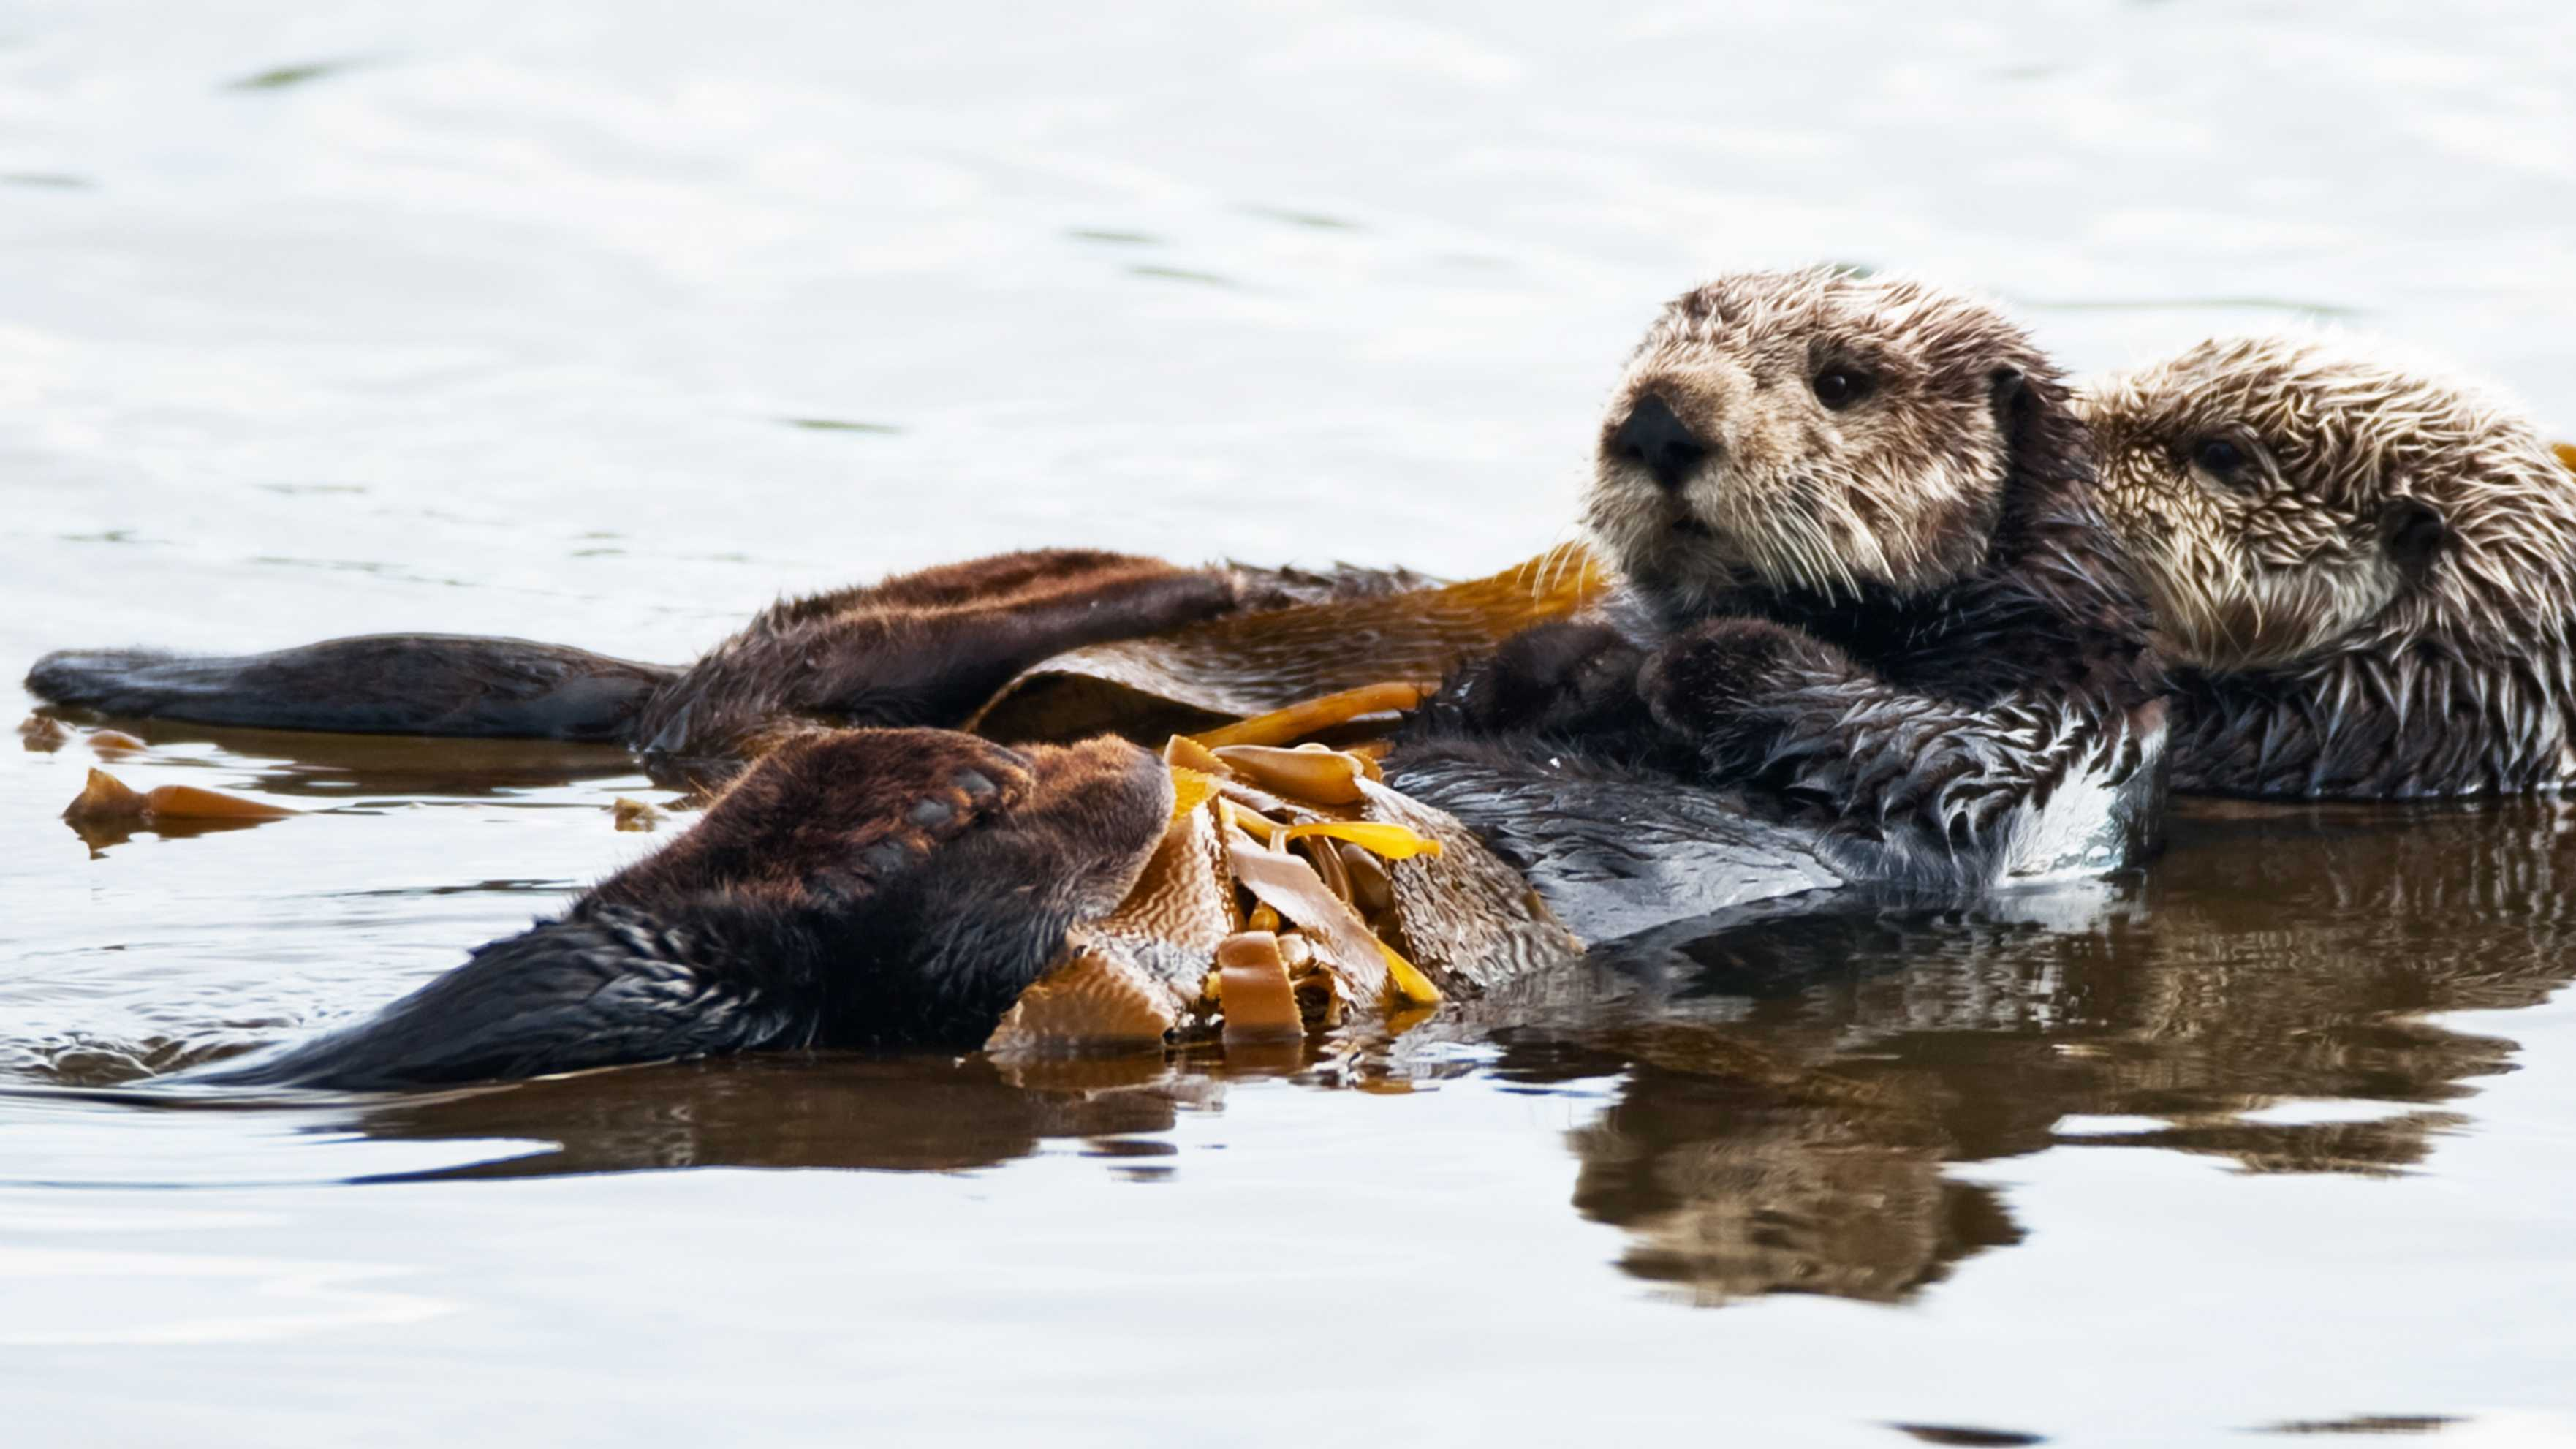 This sea otter was not one of the three that were killed.